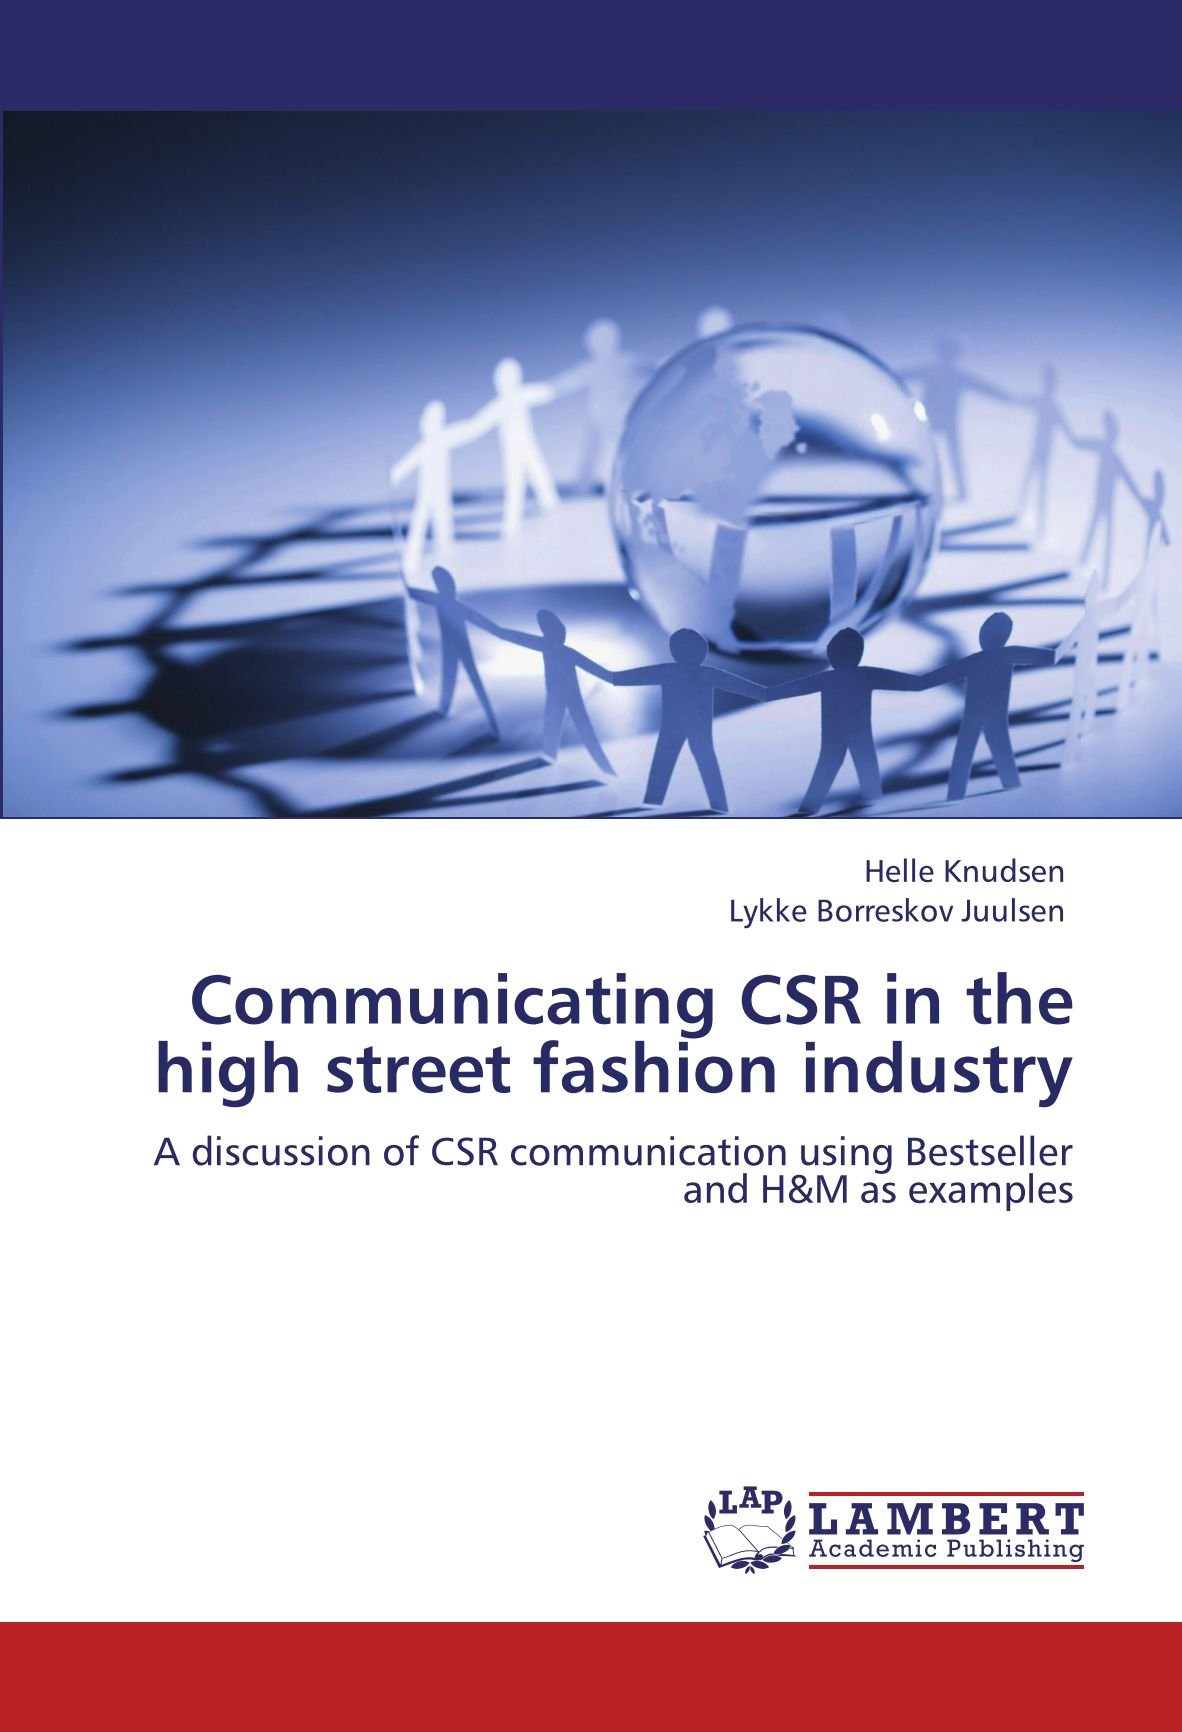 Download Communicating CSR in the high street fashion industry: A discussion of CSR communication using Bestseller and H&M as examples PDF